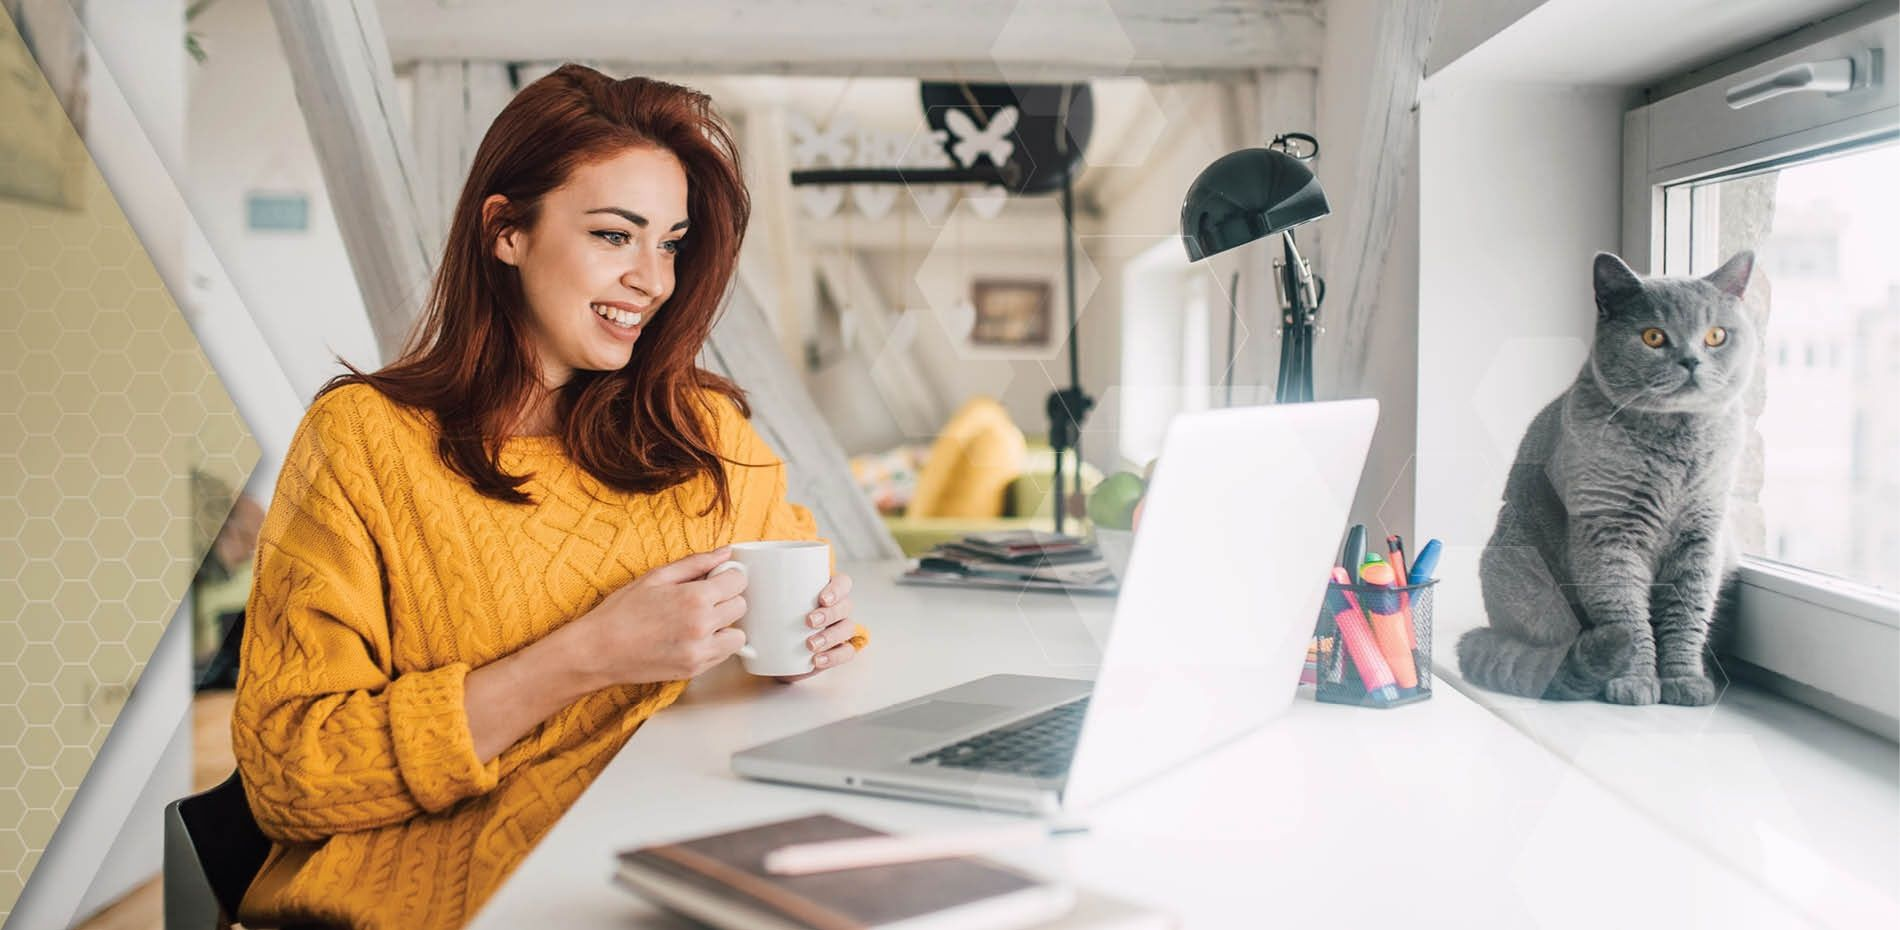 Working professional supporting her mental wellbeing by taking a break from working from home to drink coffee with her cat.